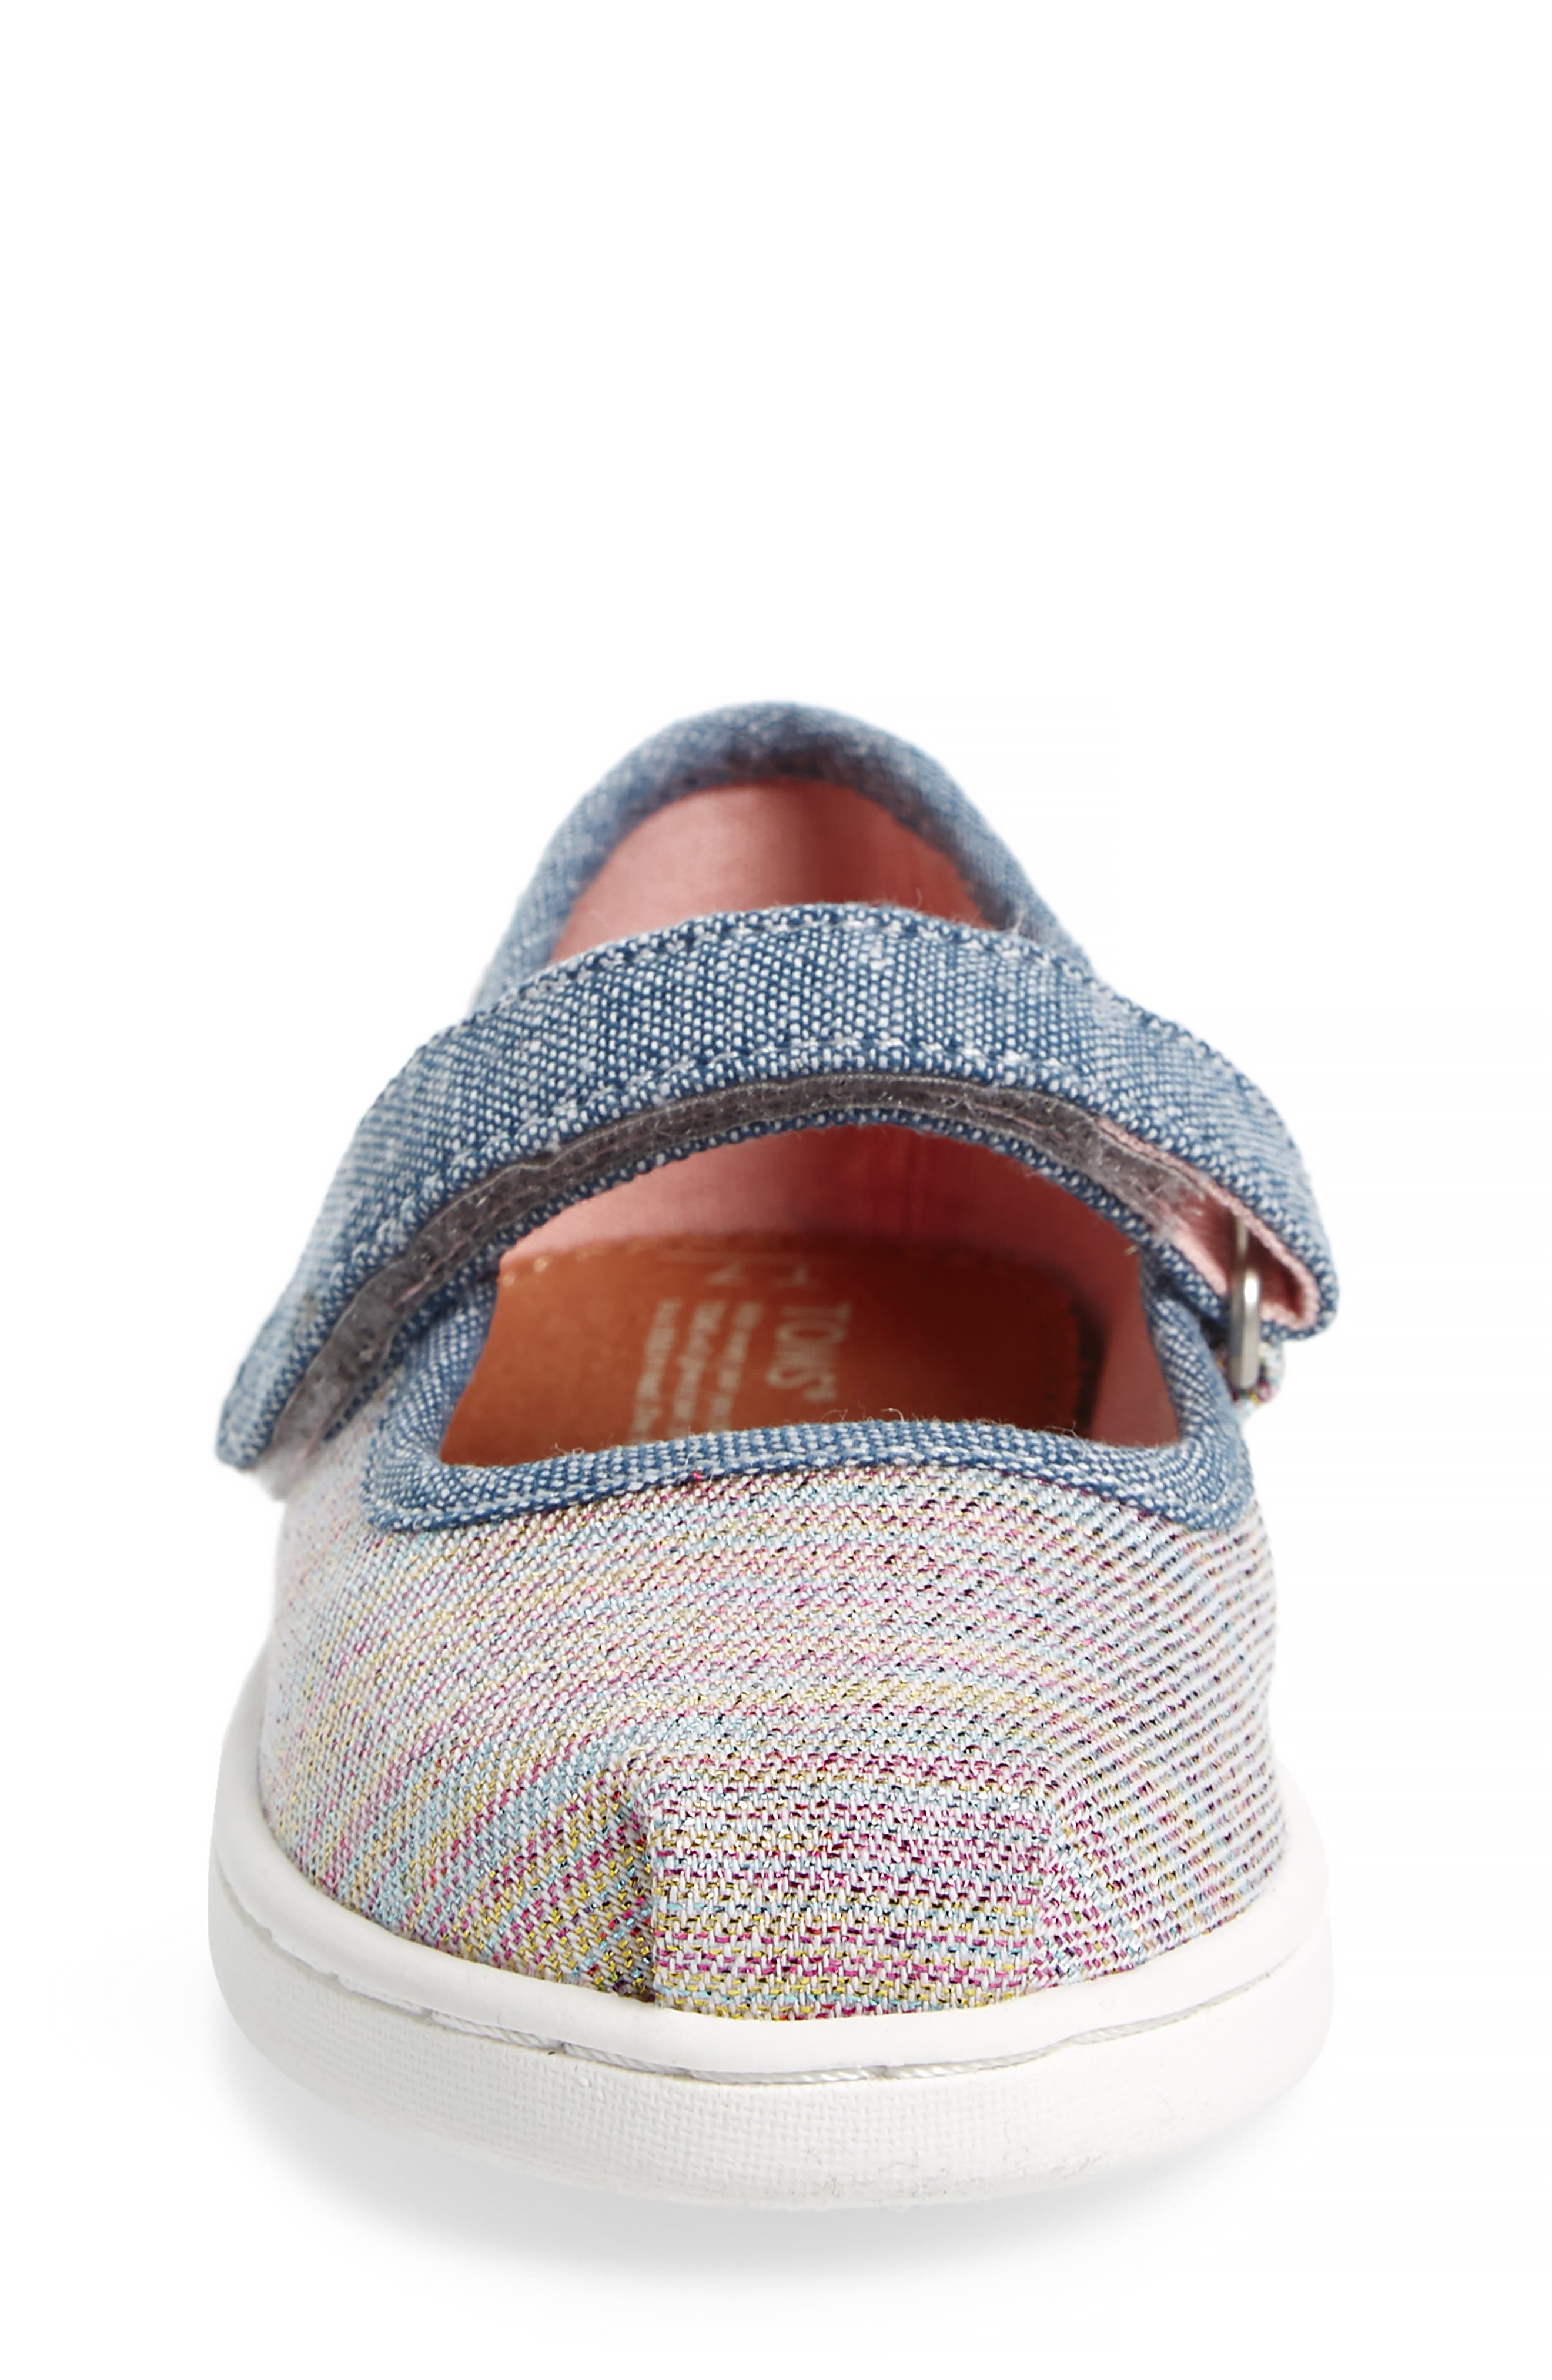 Mary Jane Sneaker,                             Alternate thumbnail 4, color,                             PINK MULTI TWILL GLIMMER